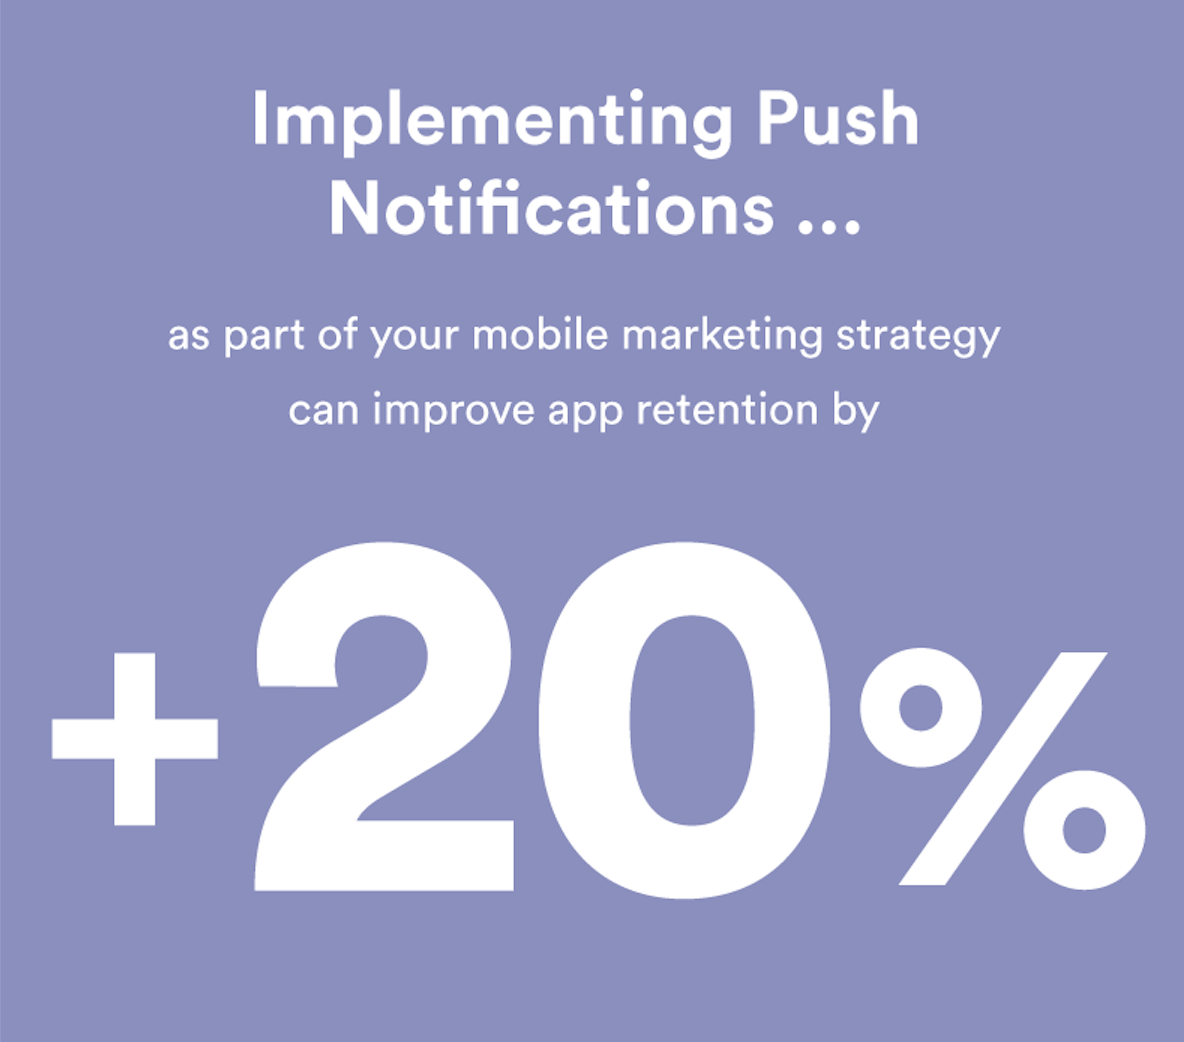 retention by 20% with push.png